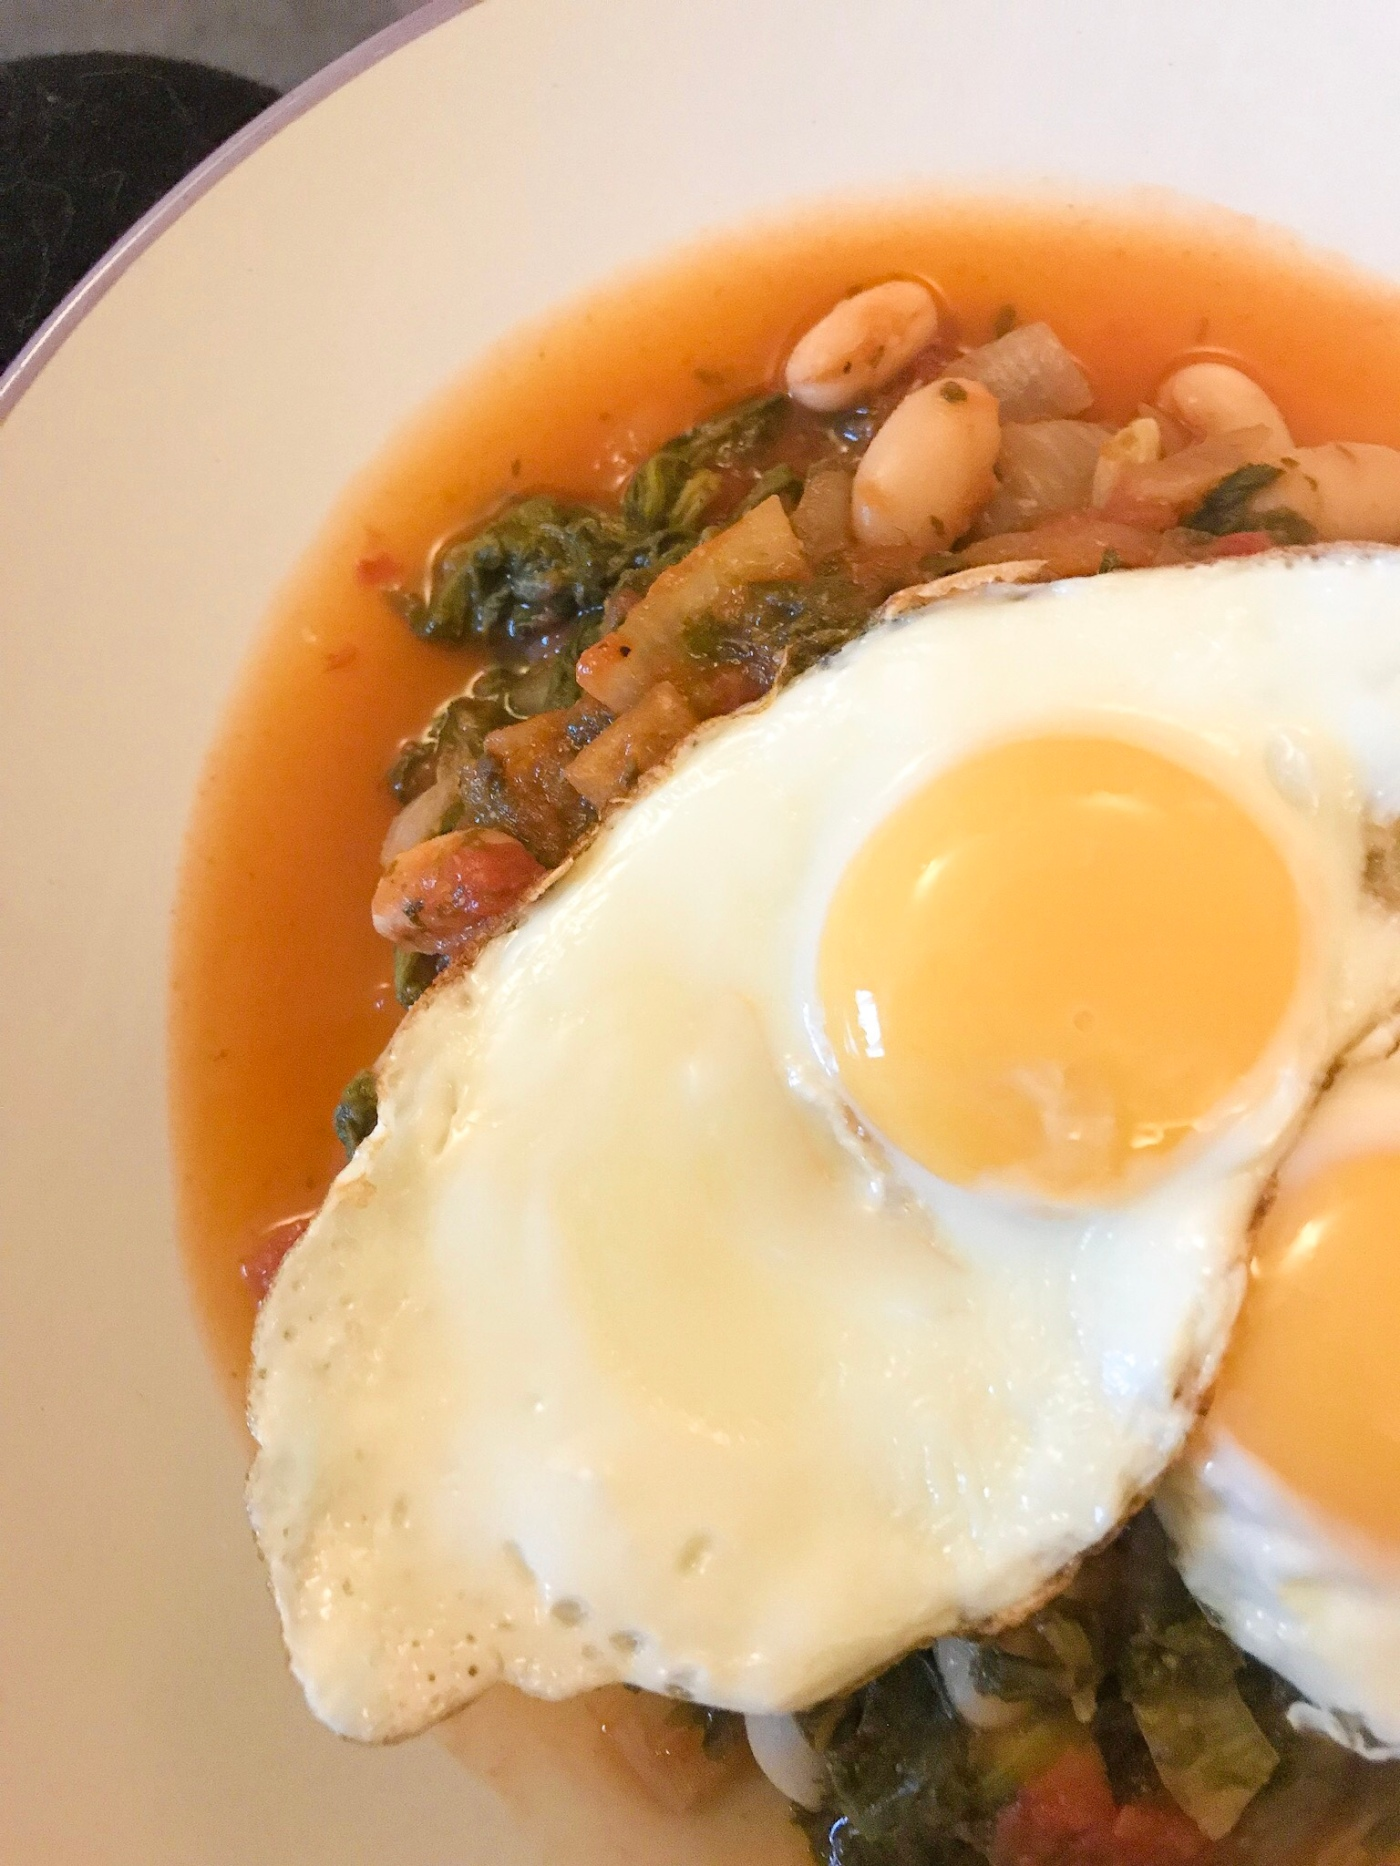 Tomatoes, cannellini beans and spinach topped with fried eggs